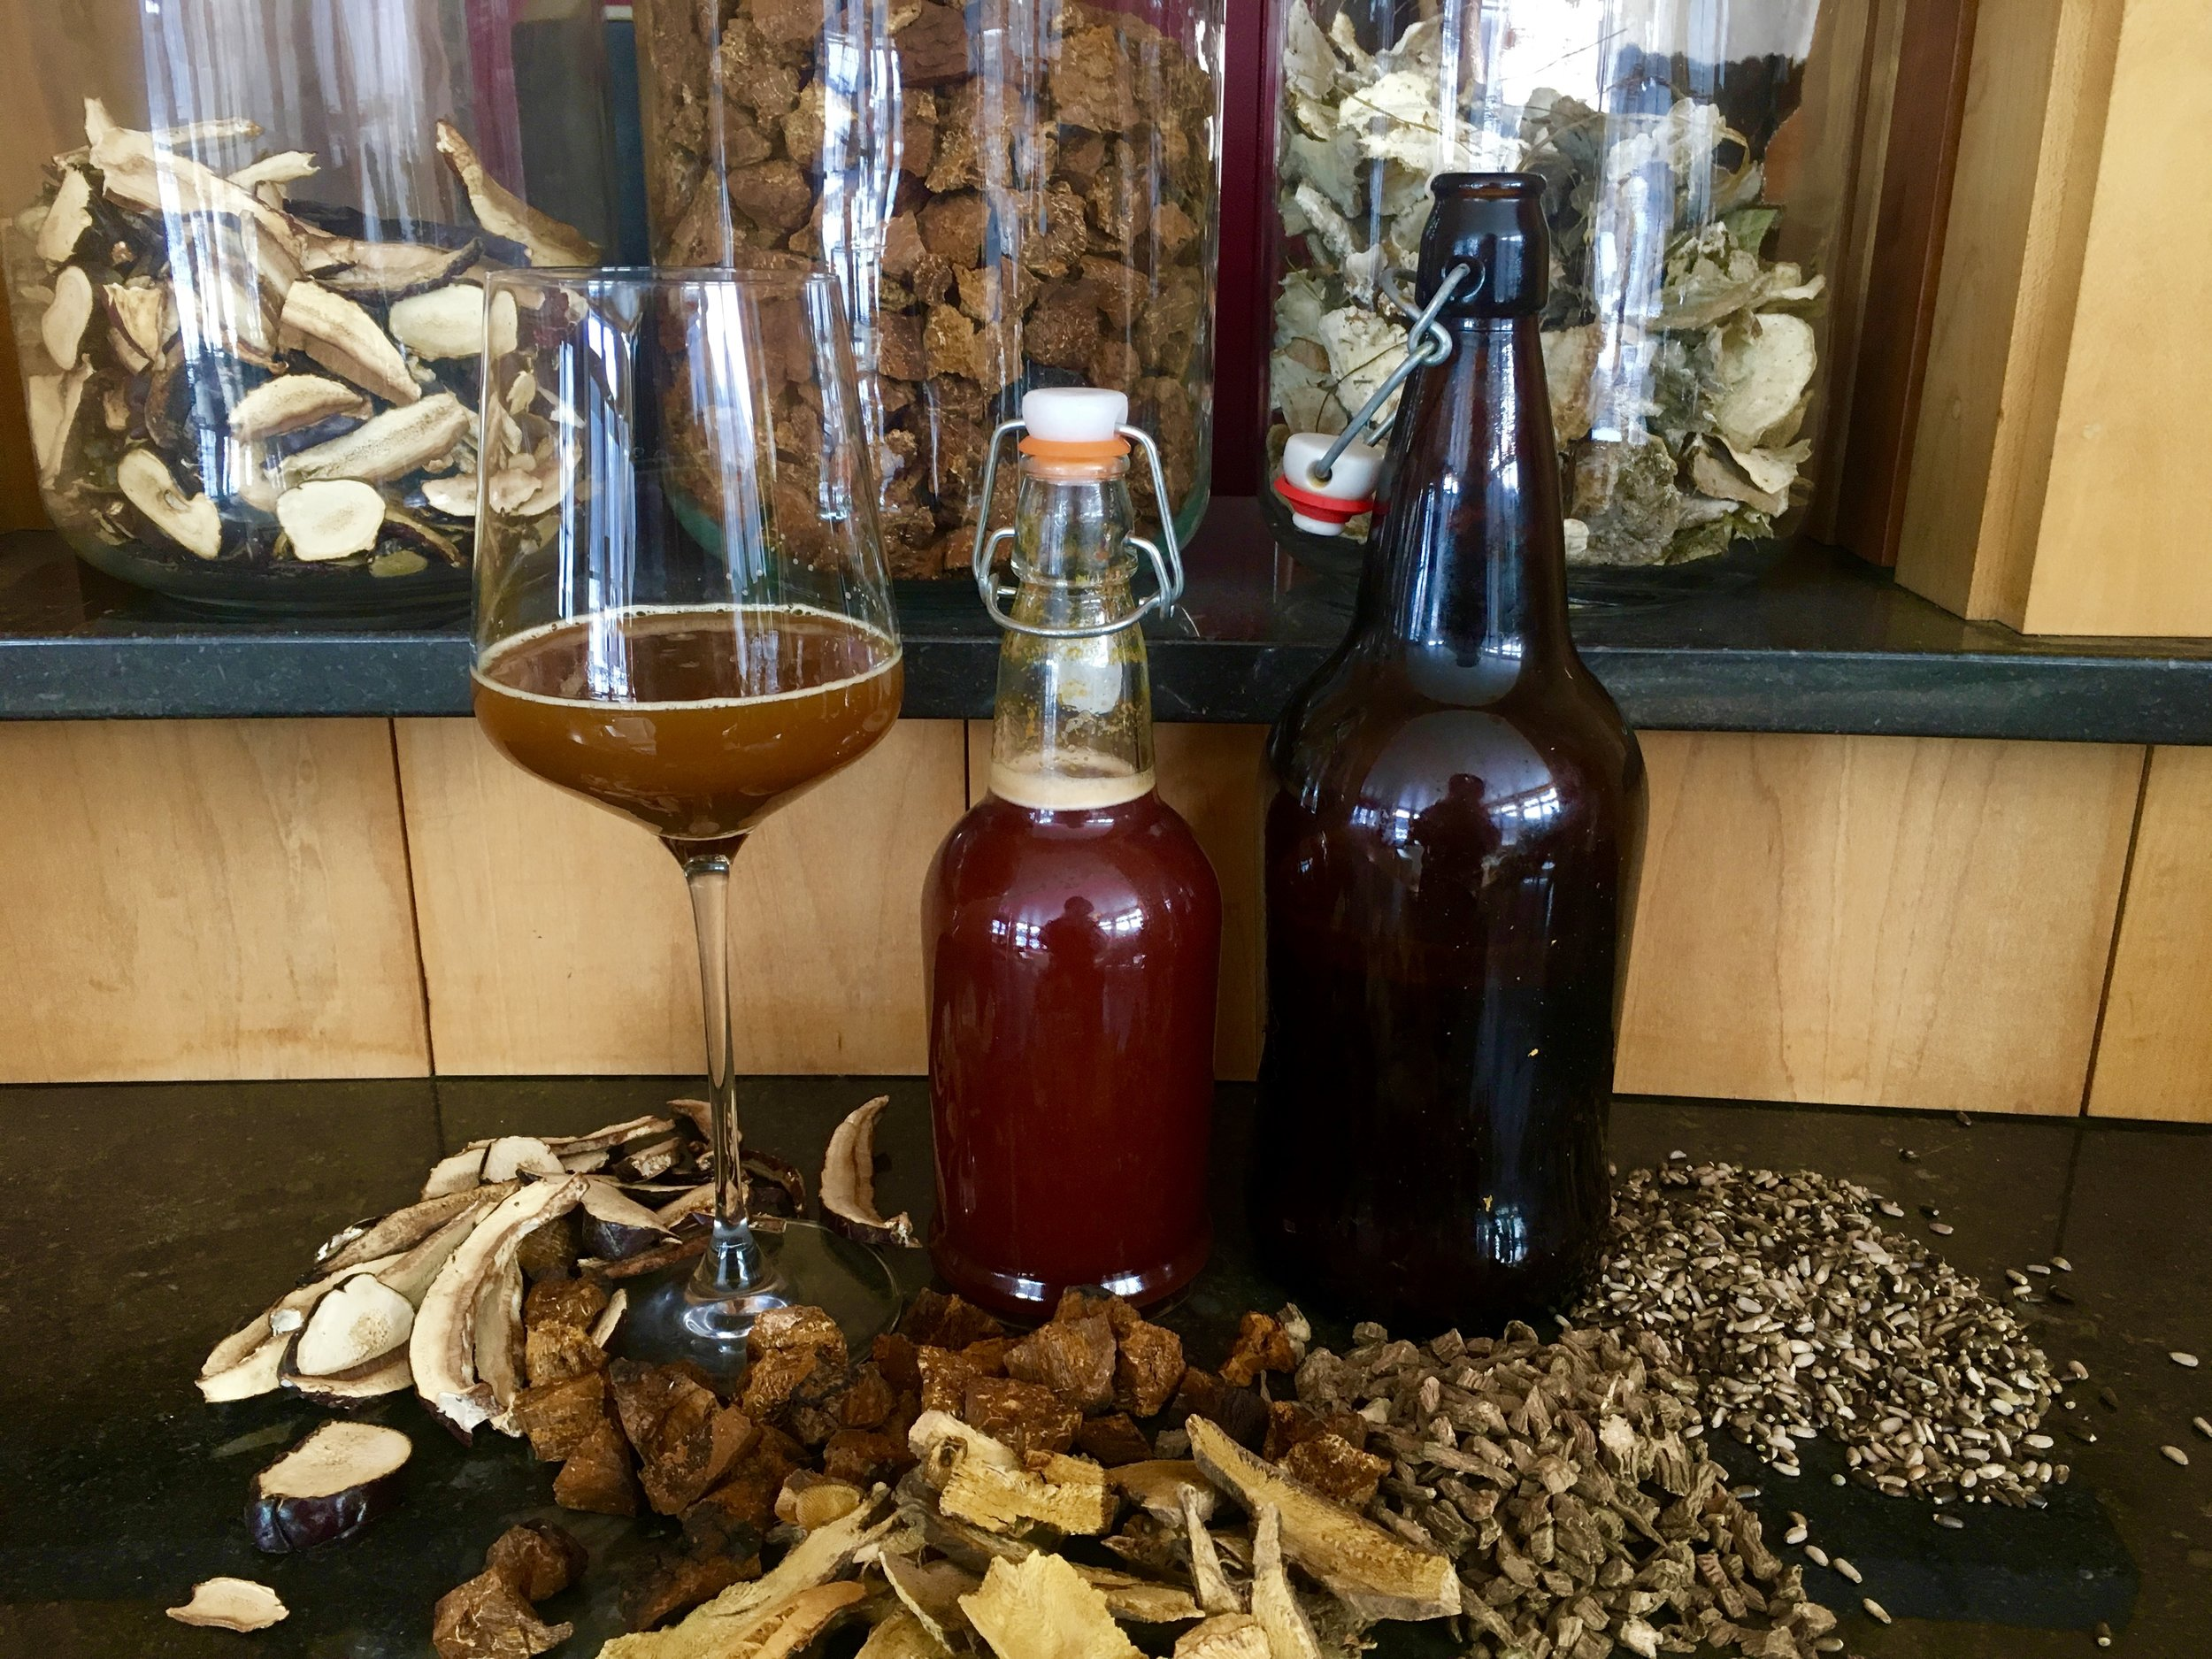 This photo shows my two latest kefir-meads made with sorghum syrup instead of honey. Healing ginger-turmeric beer with a kick, and cherry cola with a kick! These two different water kefirs contain eleuthero root, milk thistle seed, *chaga, *reishi, *dandelion root, *turkey tail, *turmeric, ginger, maple, *birch, *japanese knotweed root, teasel root, *apple cider, cherry juice, *schisandra berry...amongst other ingredients. *=grown or wild-crafted at SHO.